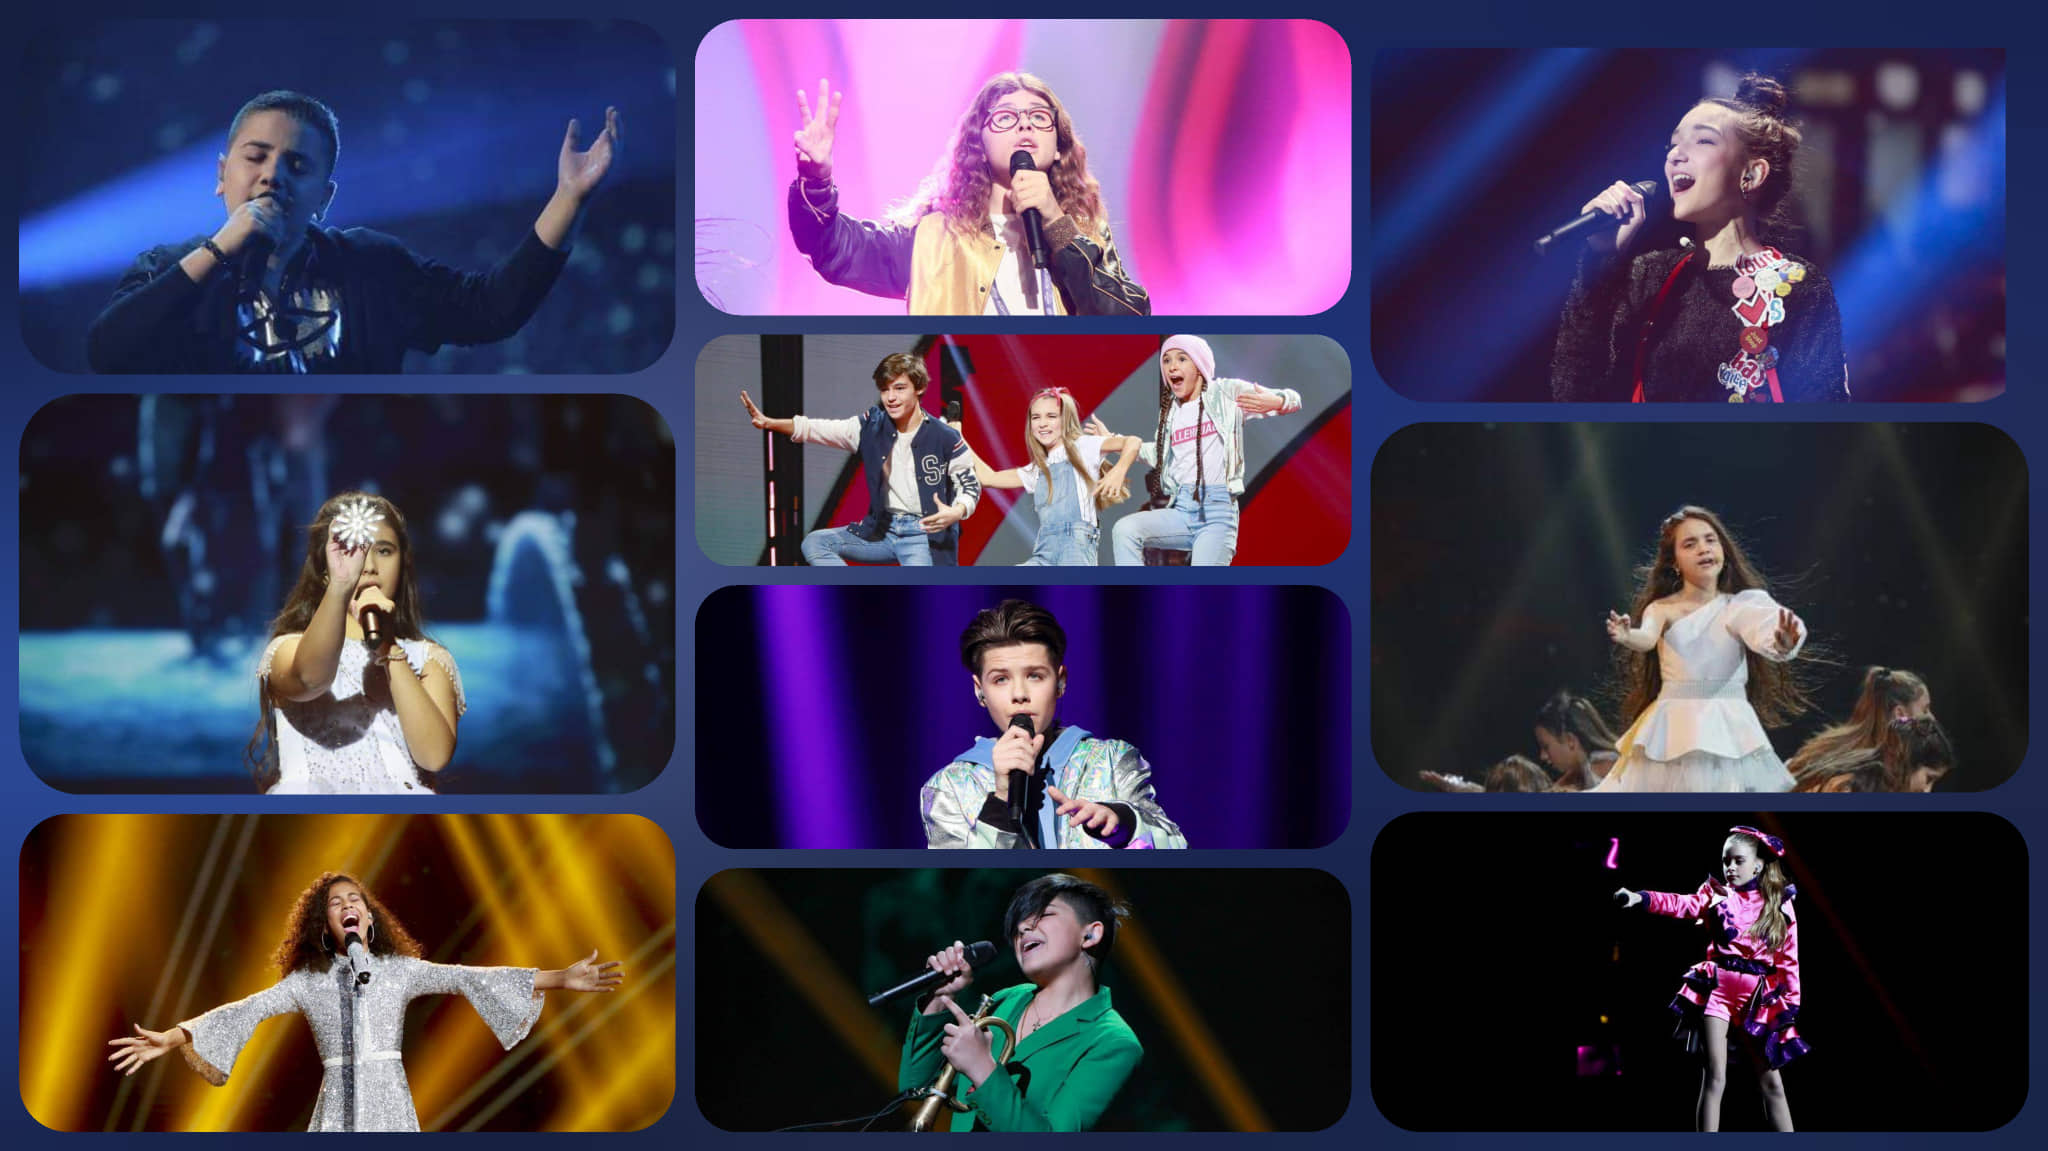 Junior Eurovision 2018: First 10 countries rehearse second time in the 3rd day of rehearsals